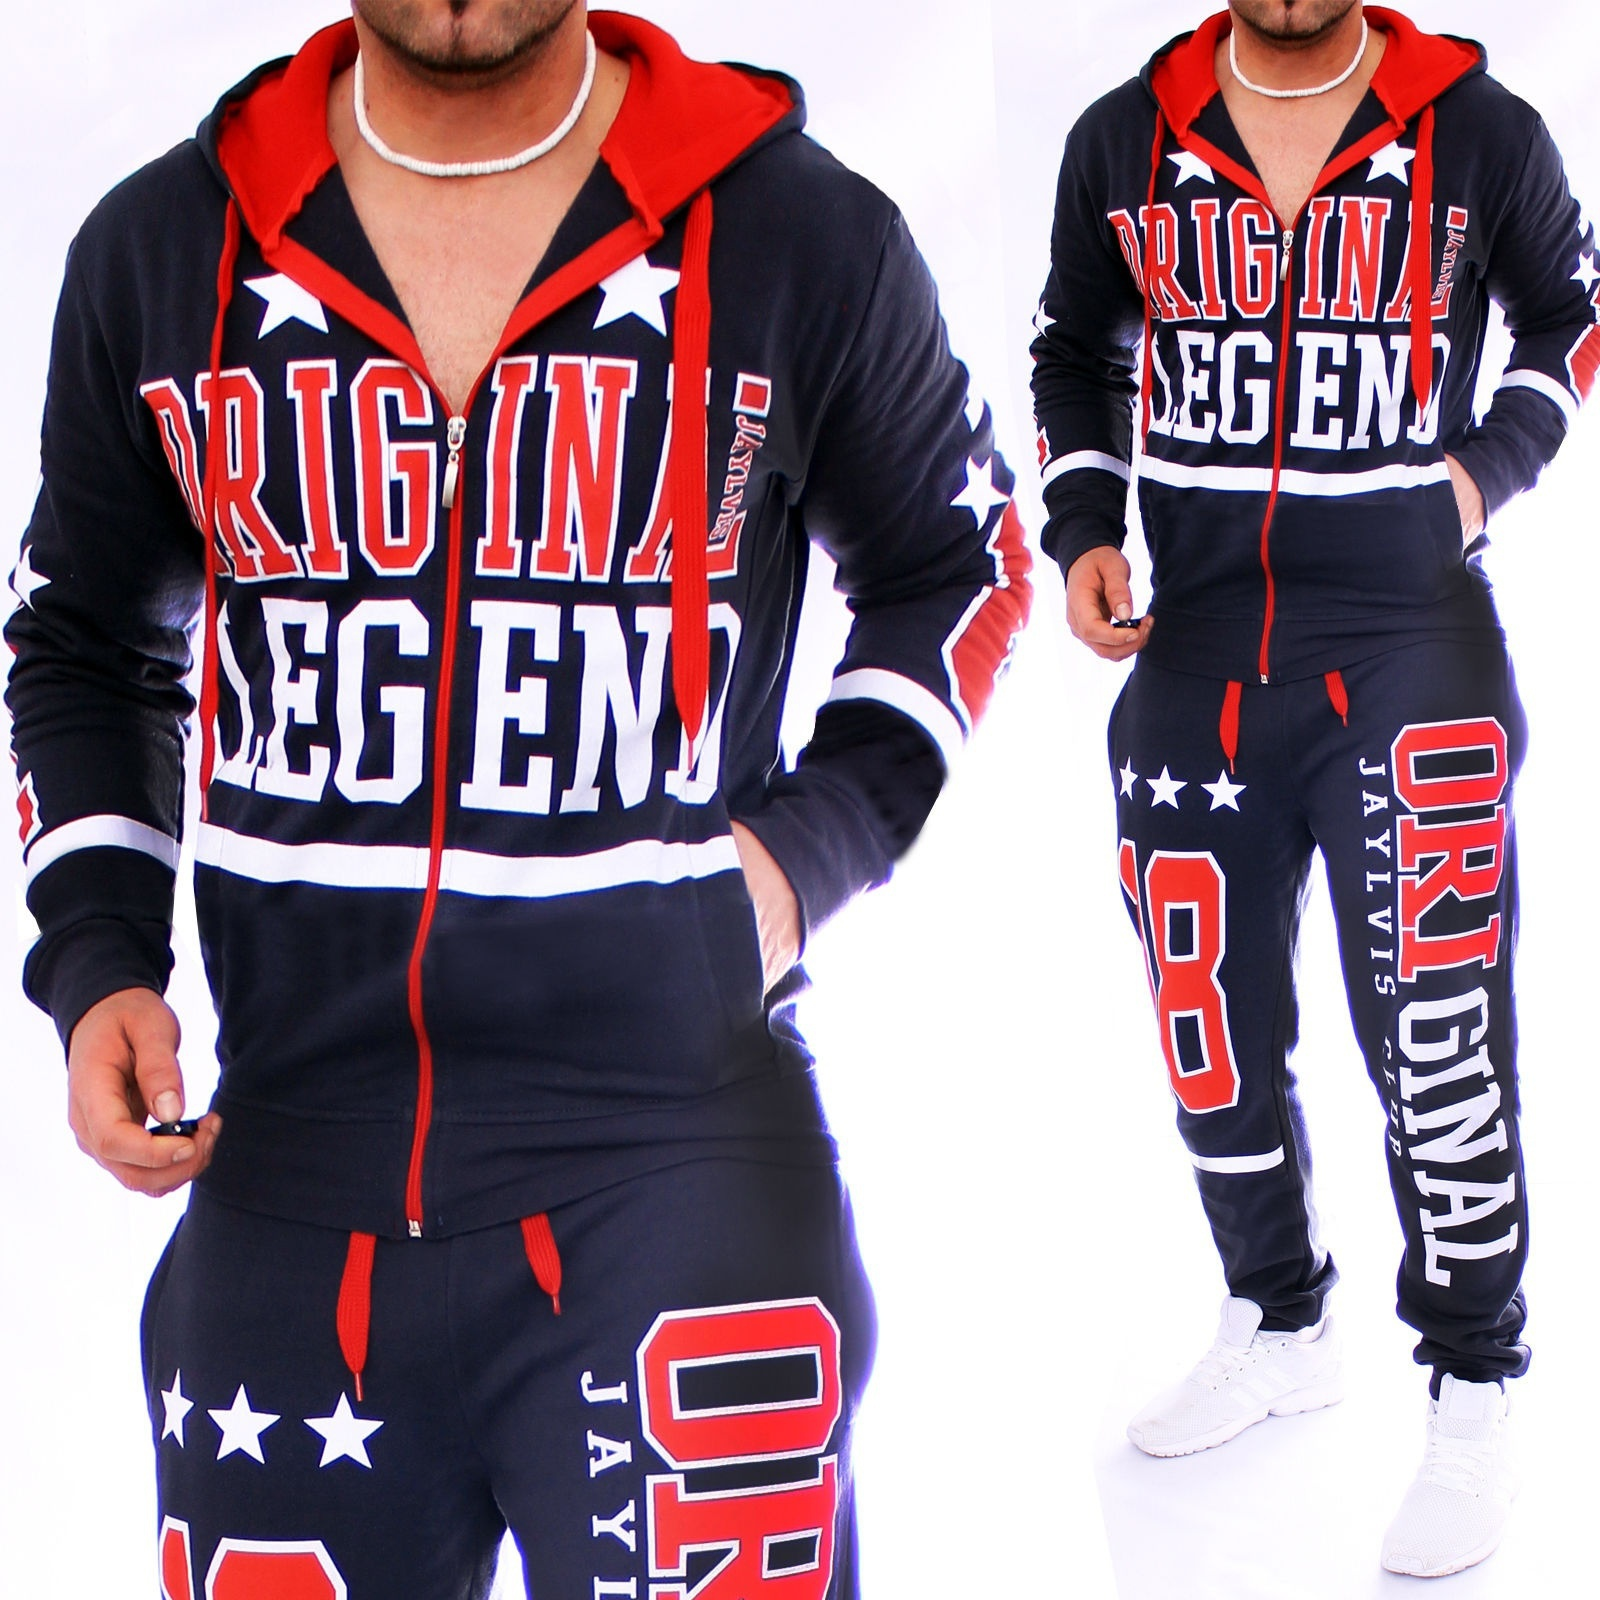 Zogaa 2019 New Men's Fashion String And Designer Hoodies And Sleeveless Set Causal Zipper Sportswear Suit 4 Colors